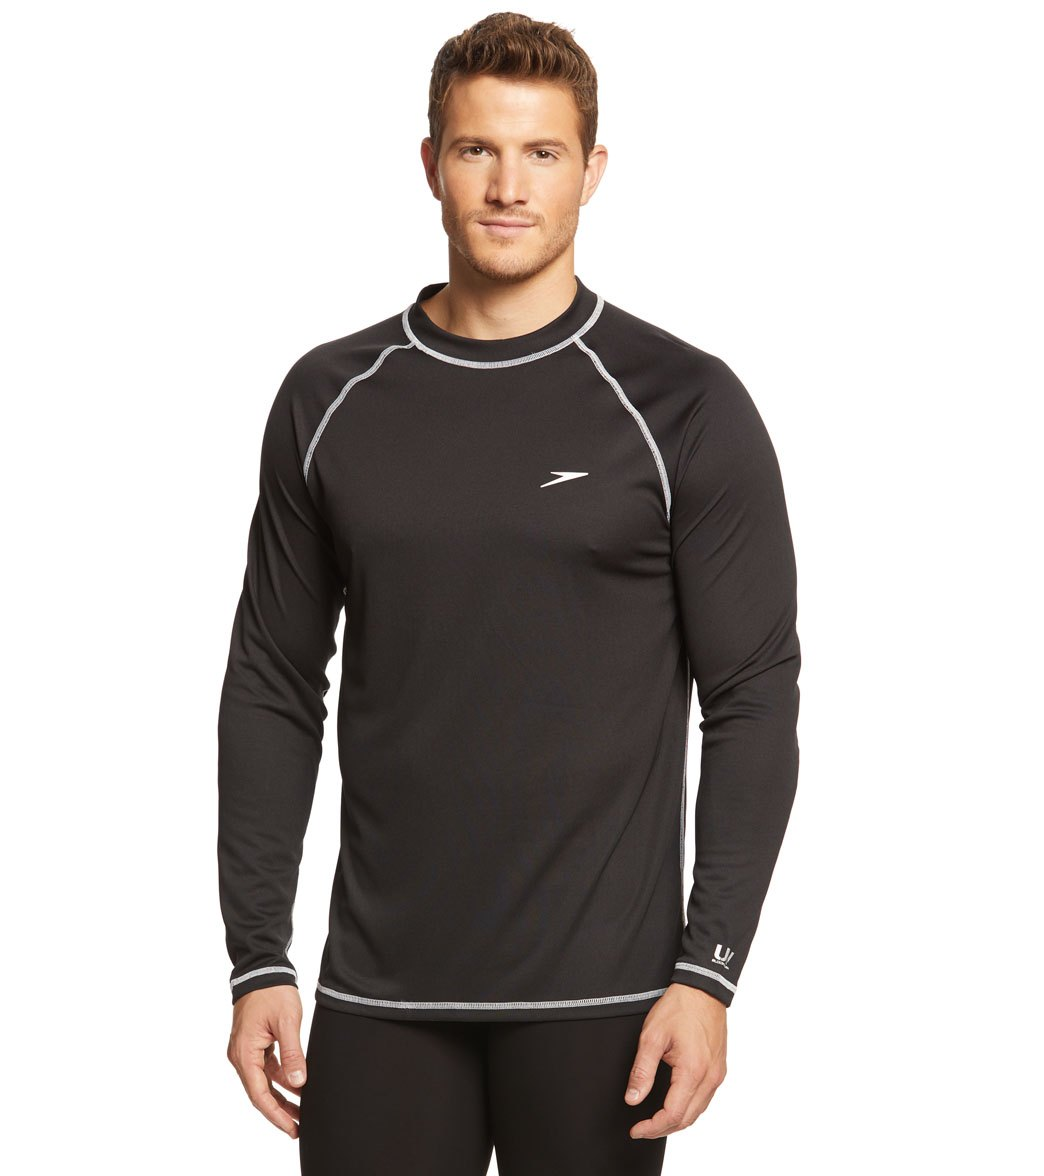 cd7e34514 Speedo Men's Easy Long Sleeve Swim Shirt at SwimOutlet.com